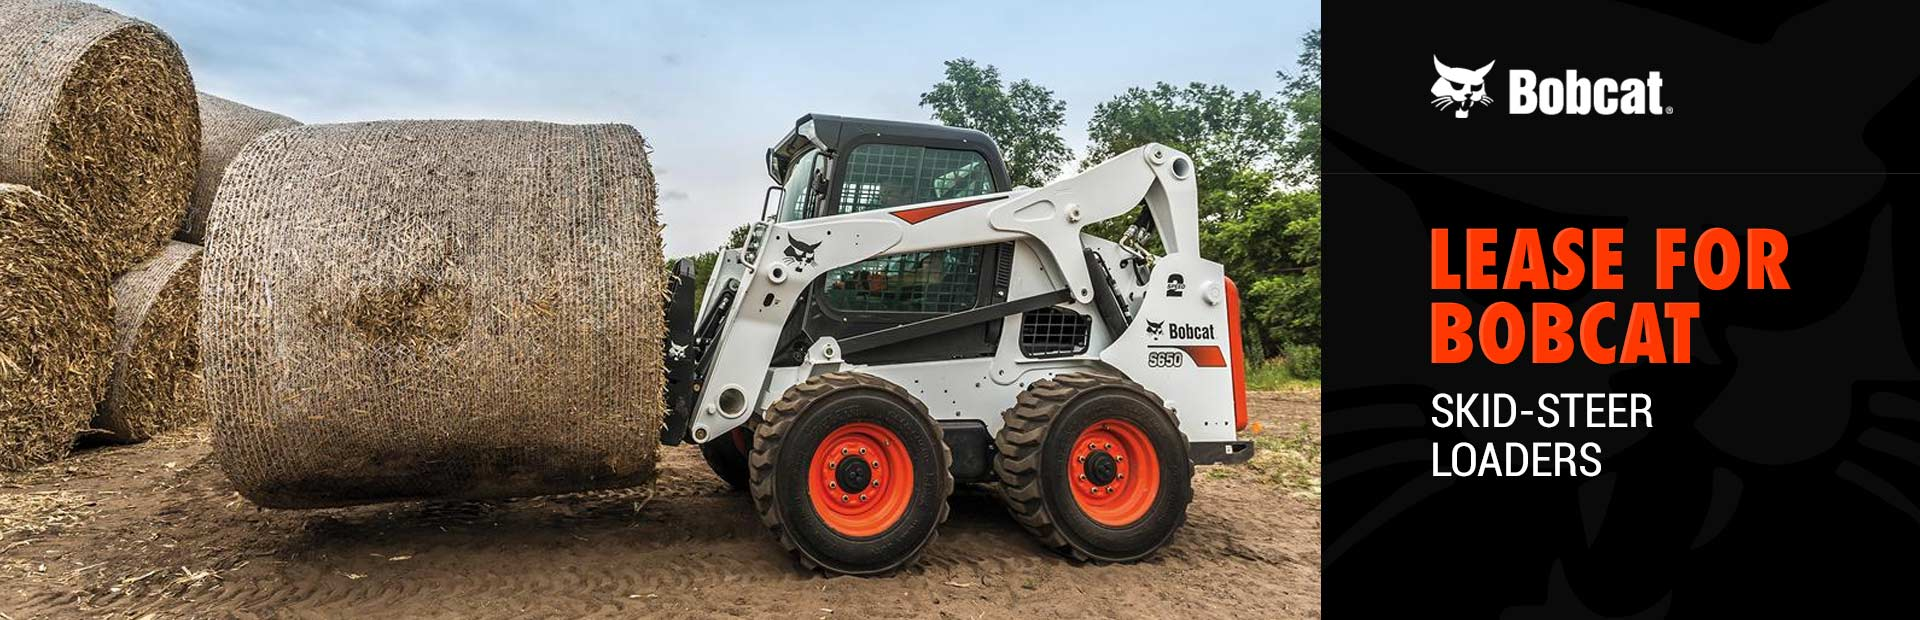 Bobcat: Lease for Bobcat Skid-Steer Loaders